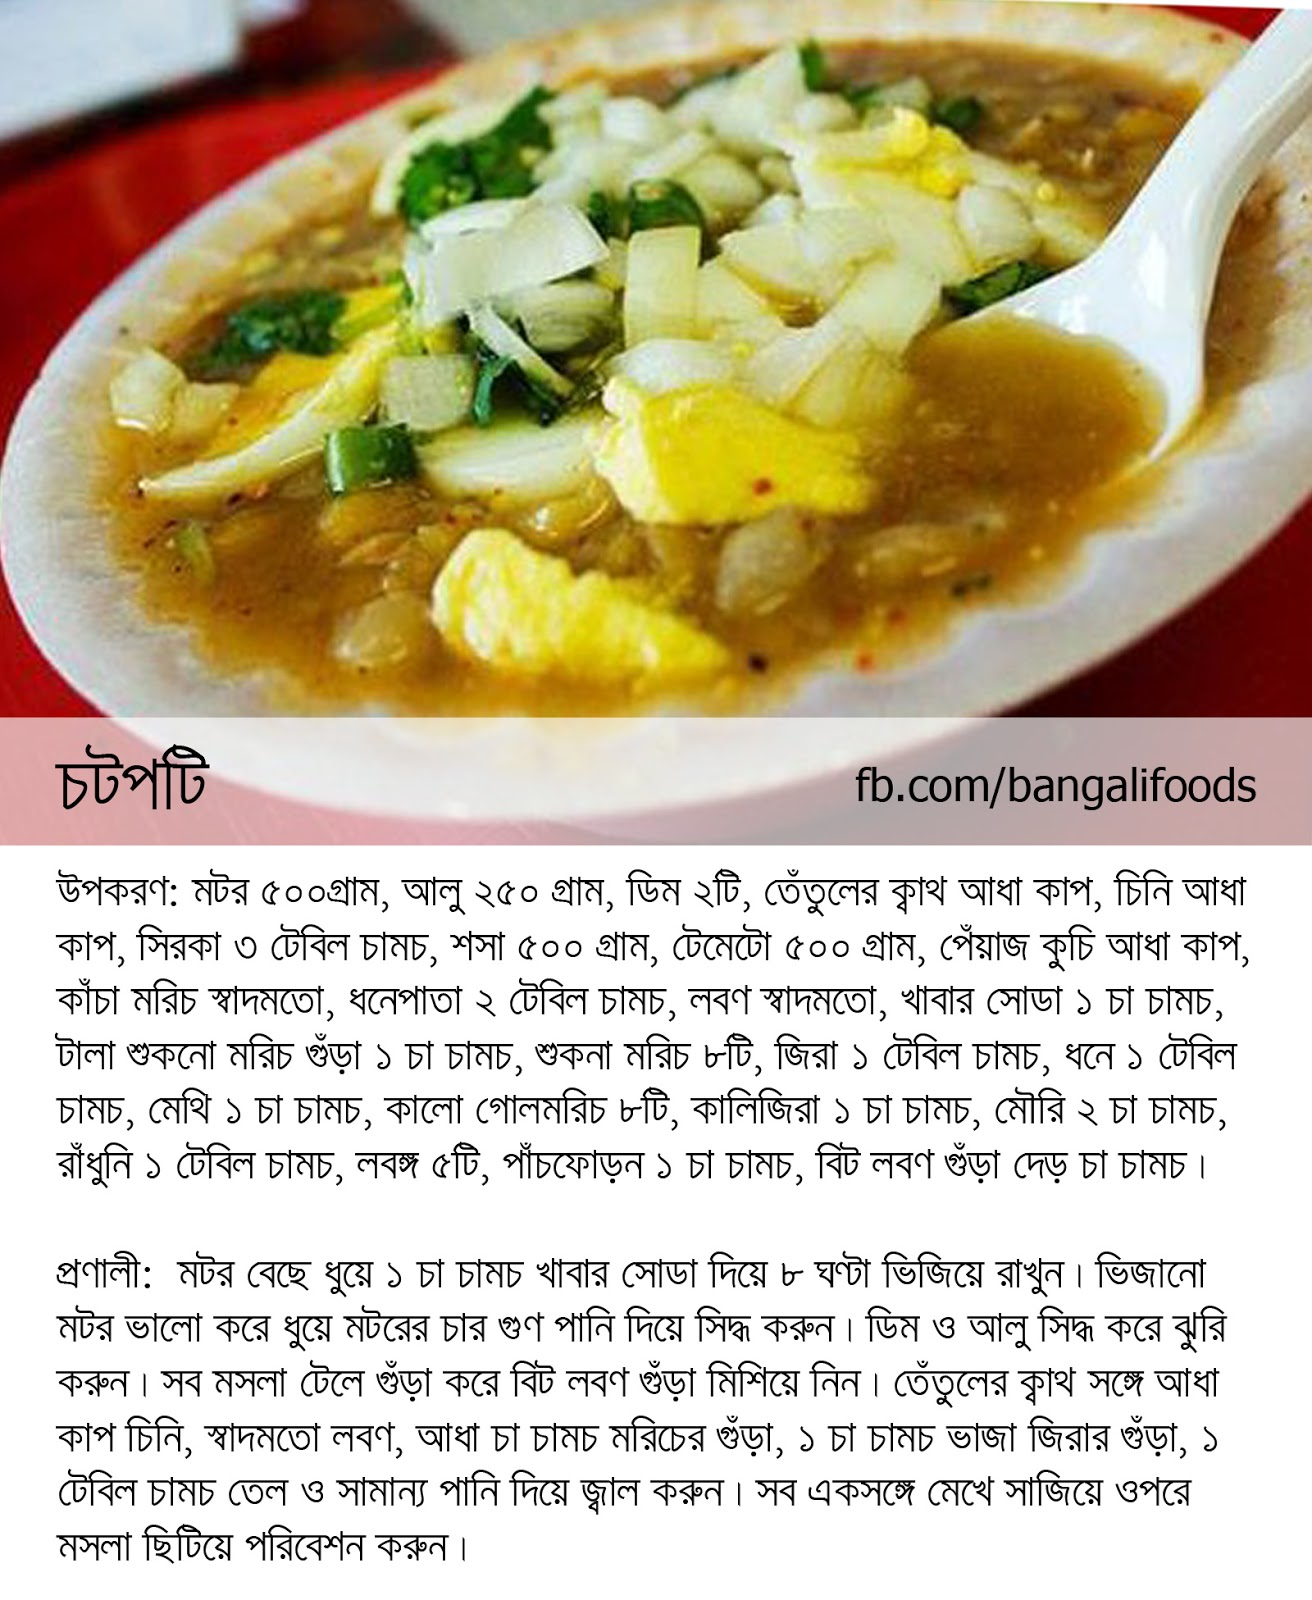 Bangali foods chotpoti recipe in bangla tasty and mouthwatering chotpoti recipe 03 in bengali forumfinder